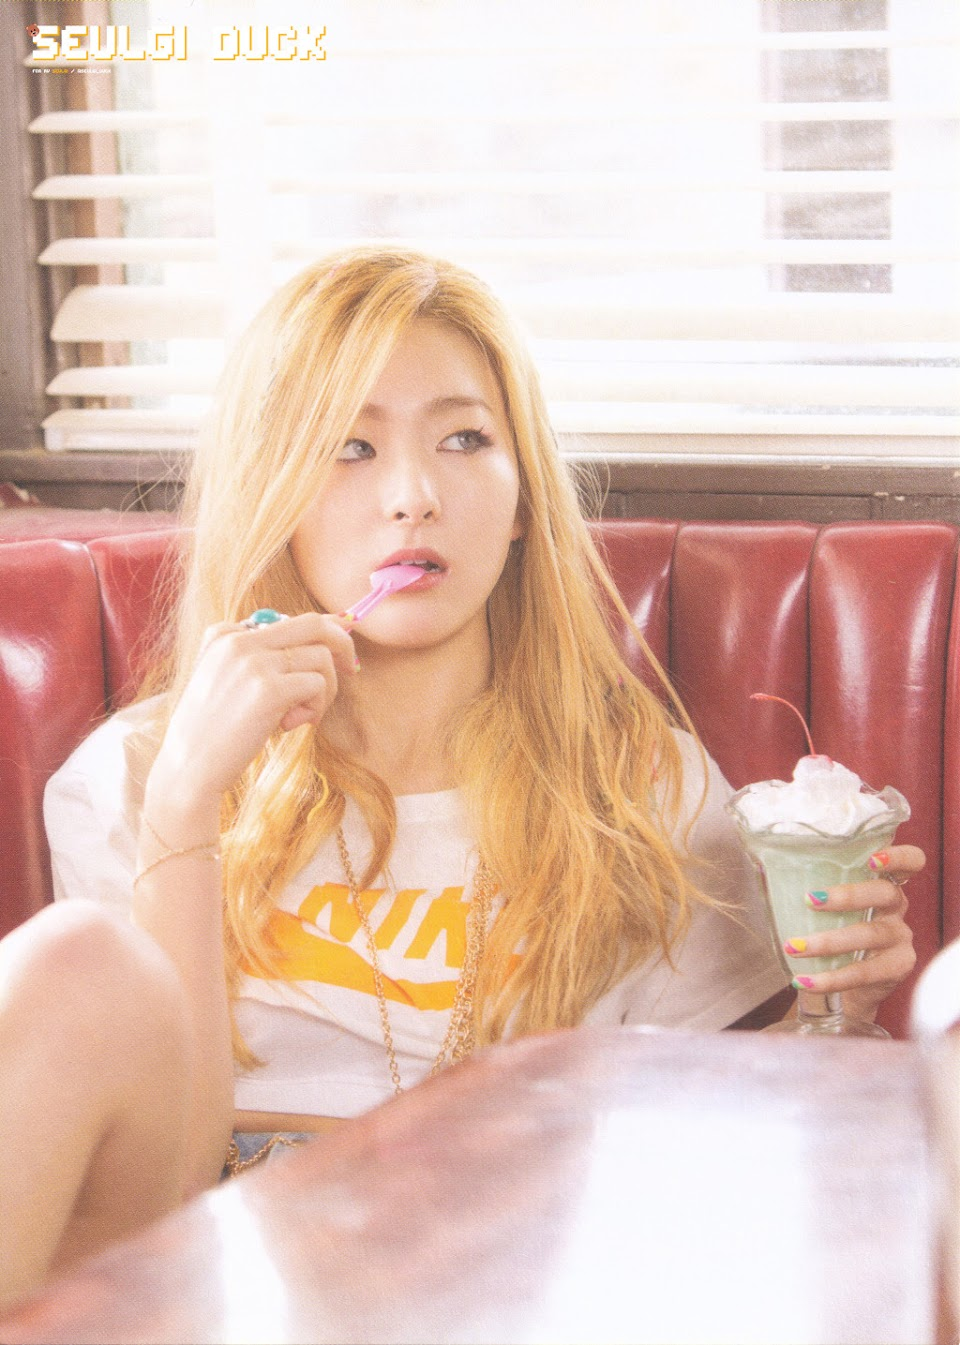 seulgi blonde ice cream cake